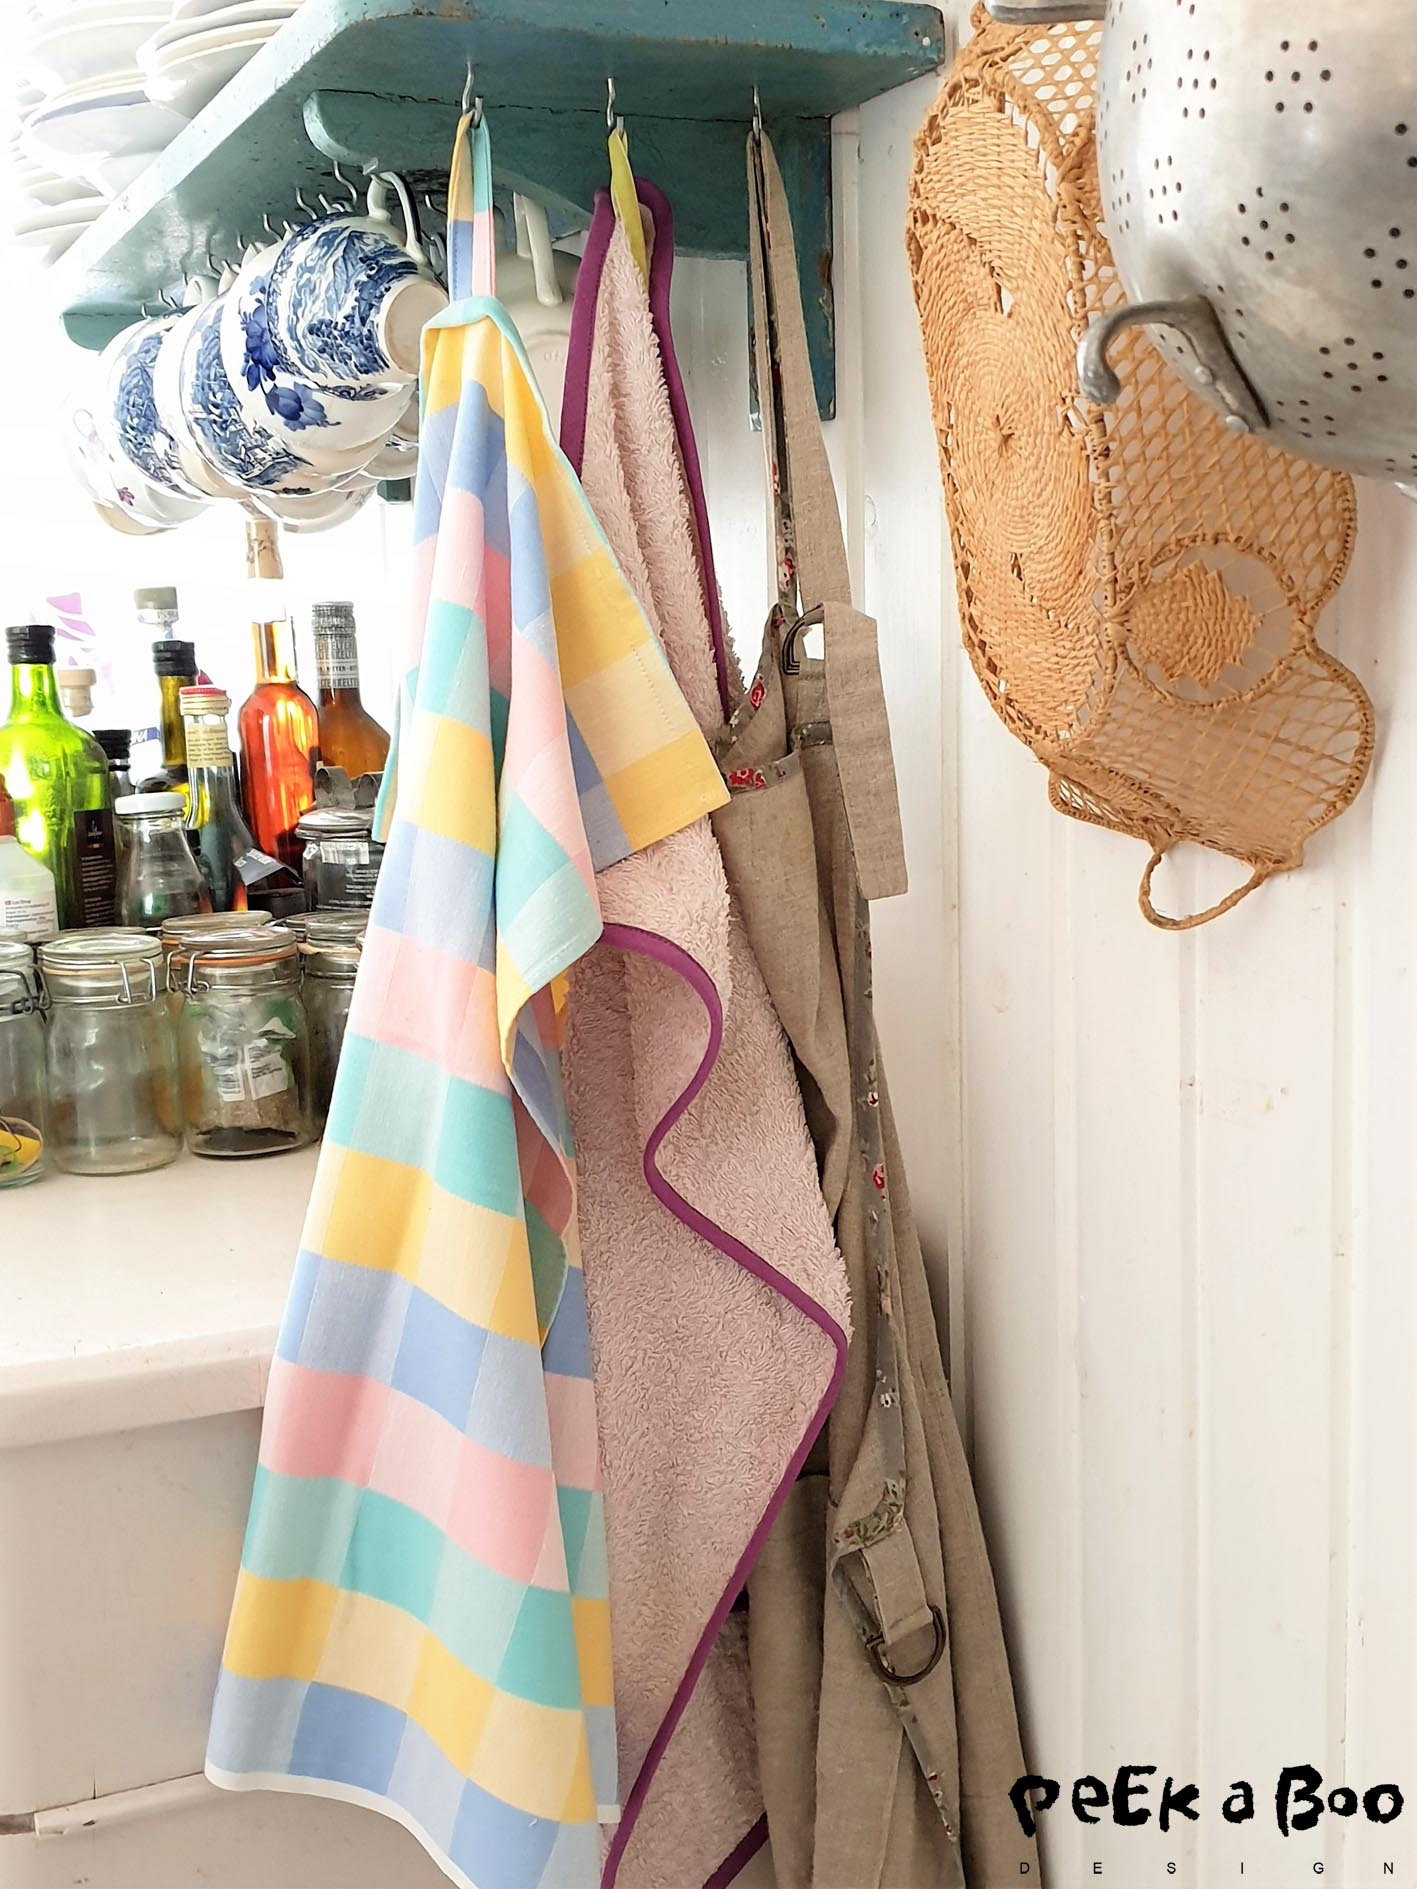 The tea towel is an upcycled tabelcloth, this is an easy way to recycle your old textiles. And the small towel is made from an old towel that has gotten too dirty on the middle part and therefore not useful any longer. Cut out the dirty part and make smaller towels for guests or the kitchen.